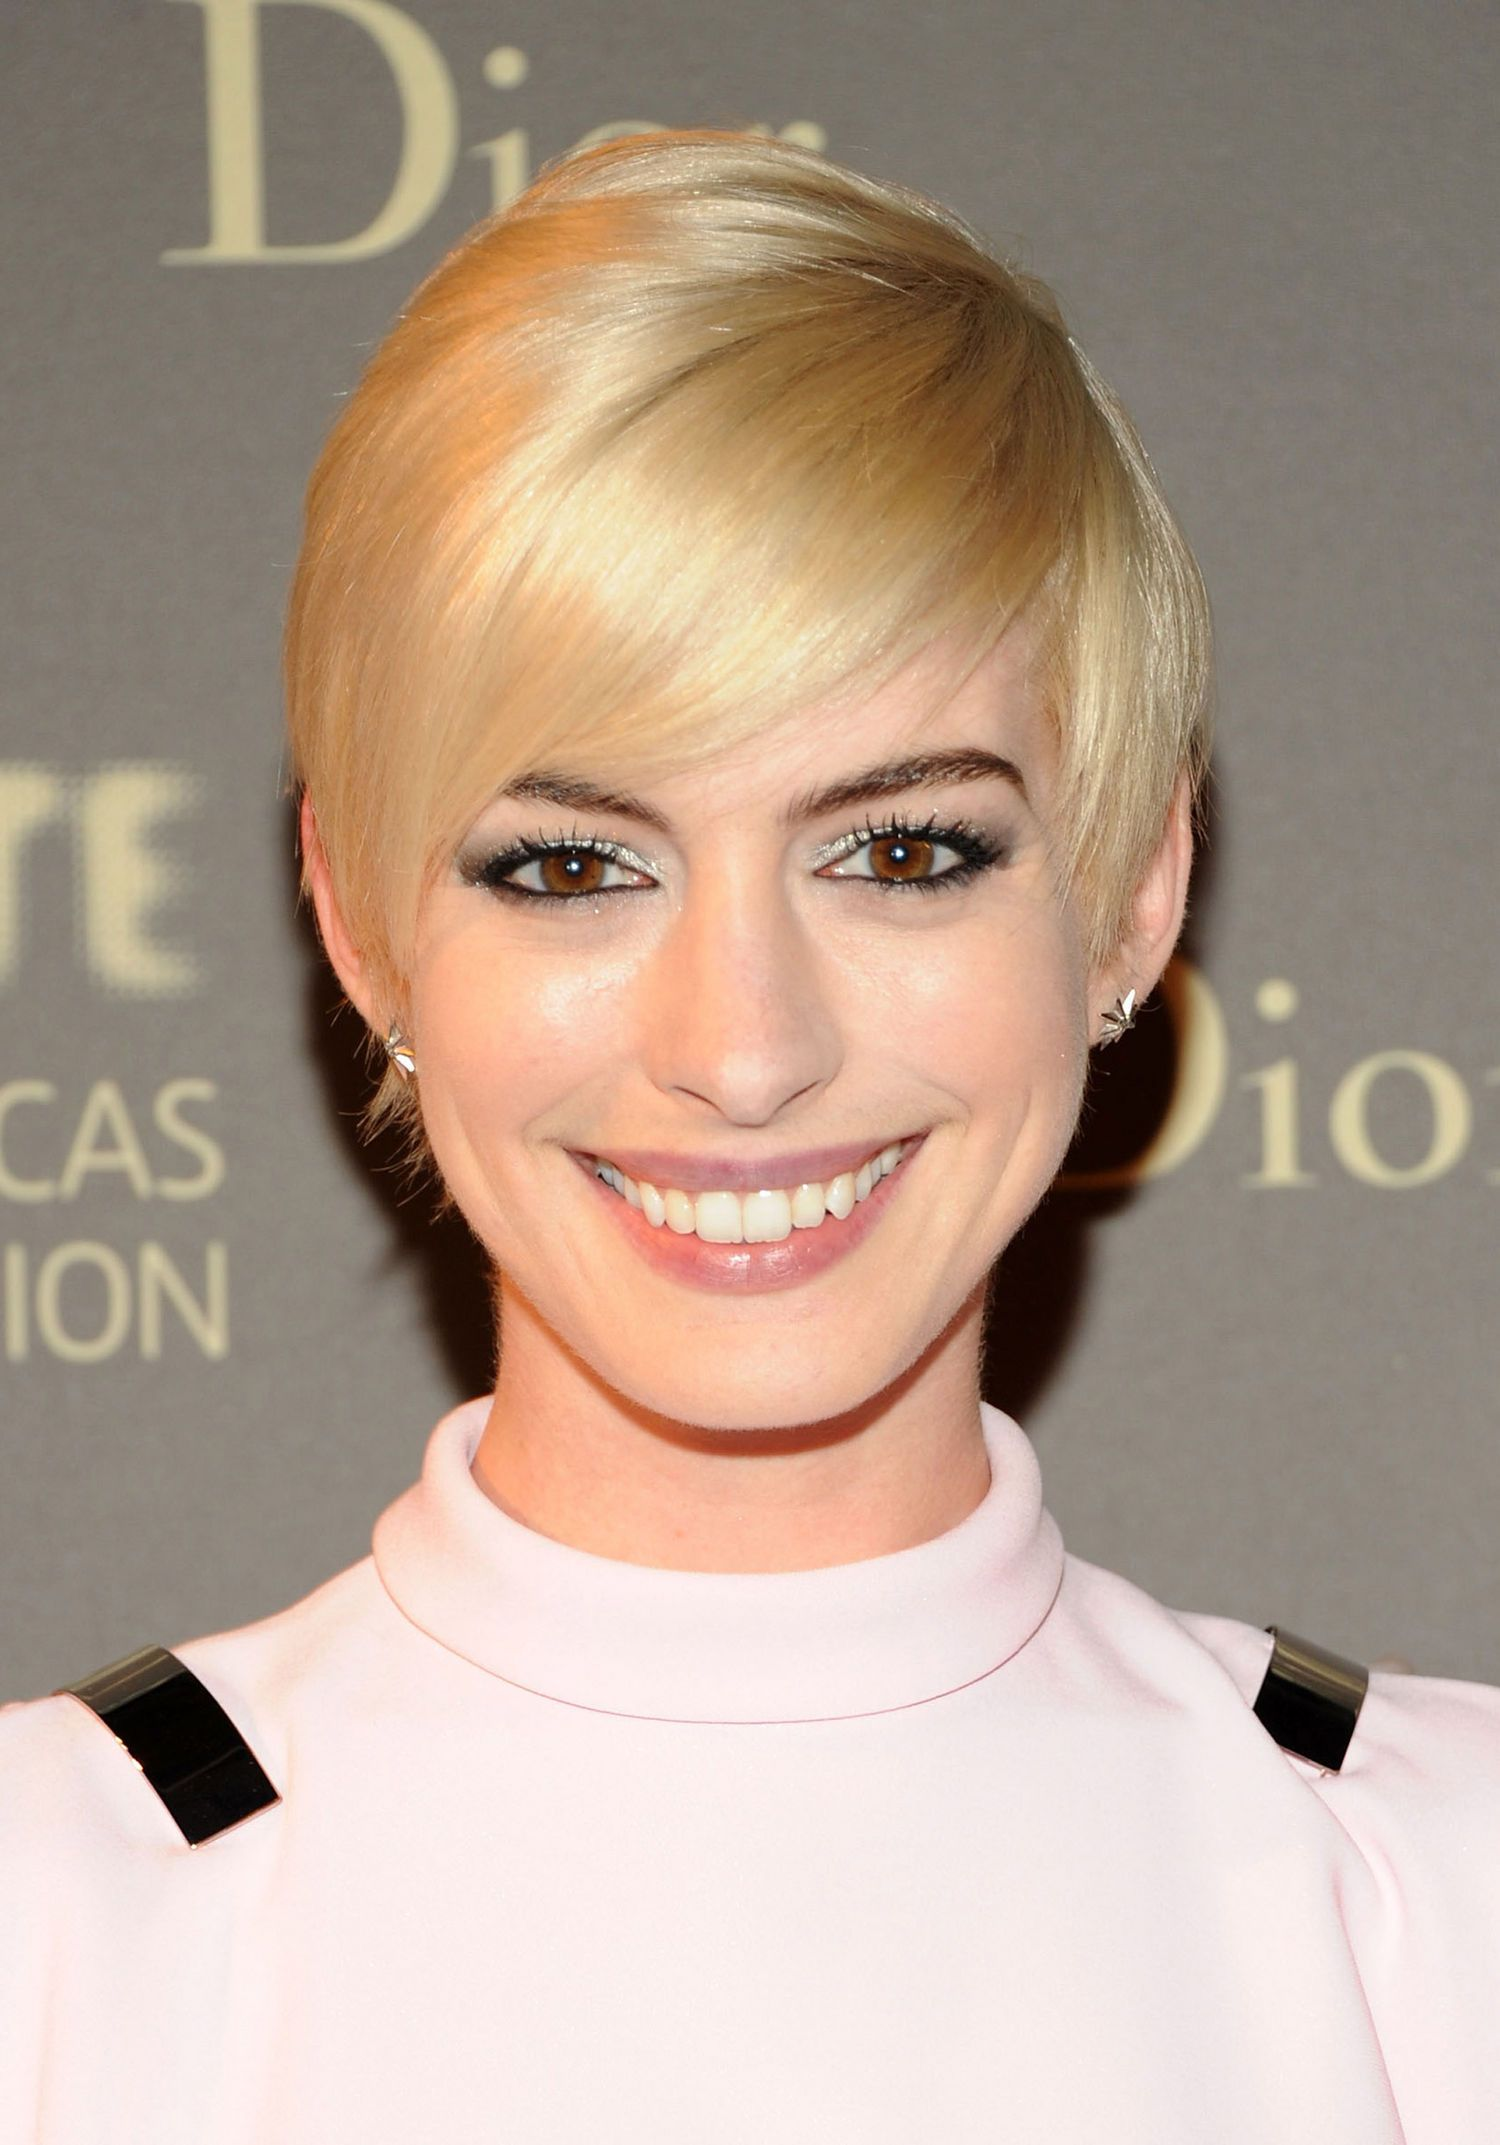 Anne Hathaway has embraced her short hair and briefly rocked a